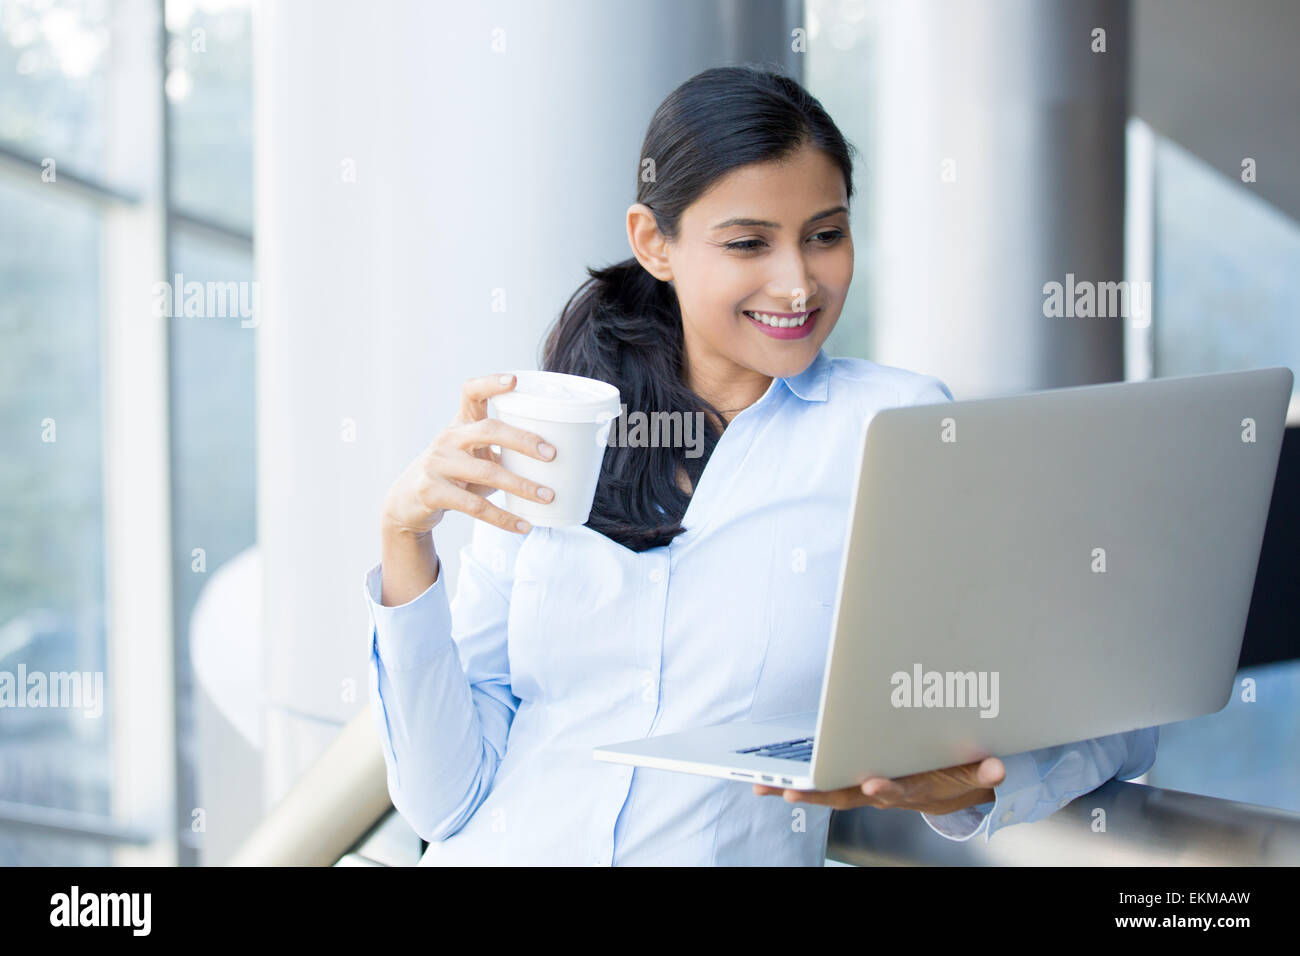 Closeup portrait, young, attractive woman standing, drinking coffee, smiling looking, surfing the silver laptop. - Stock Image